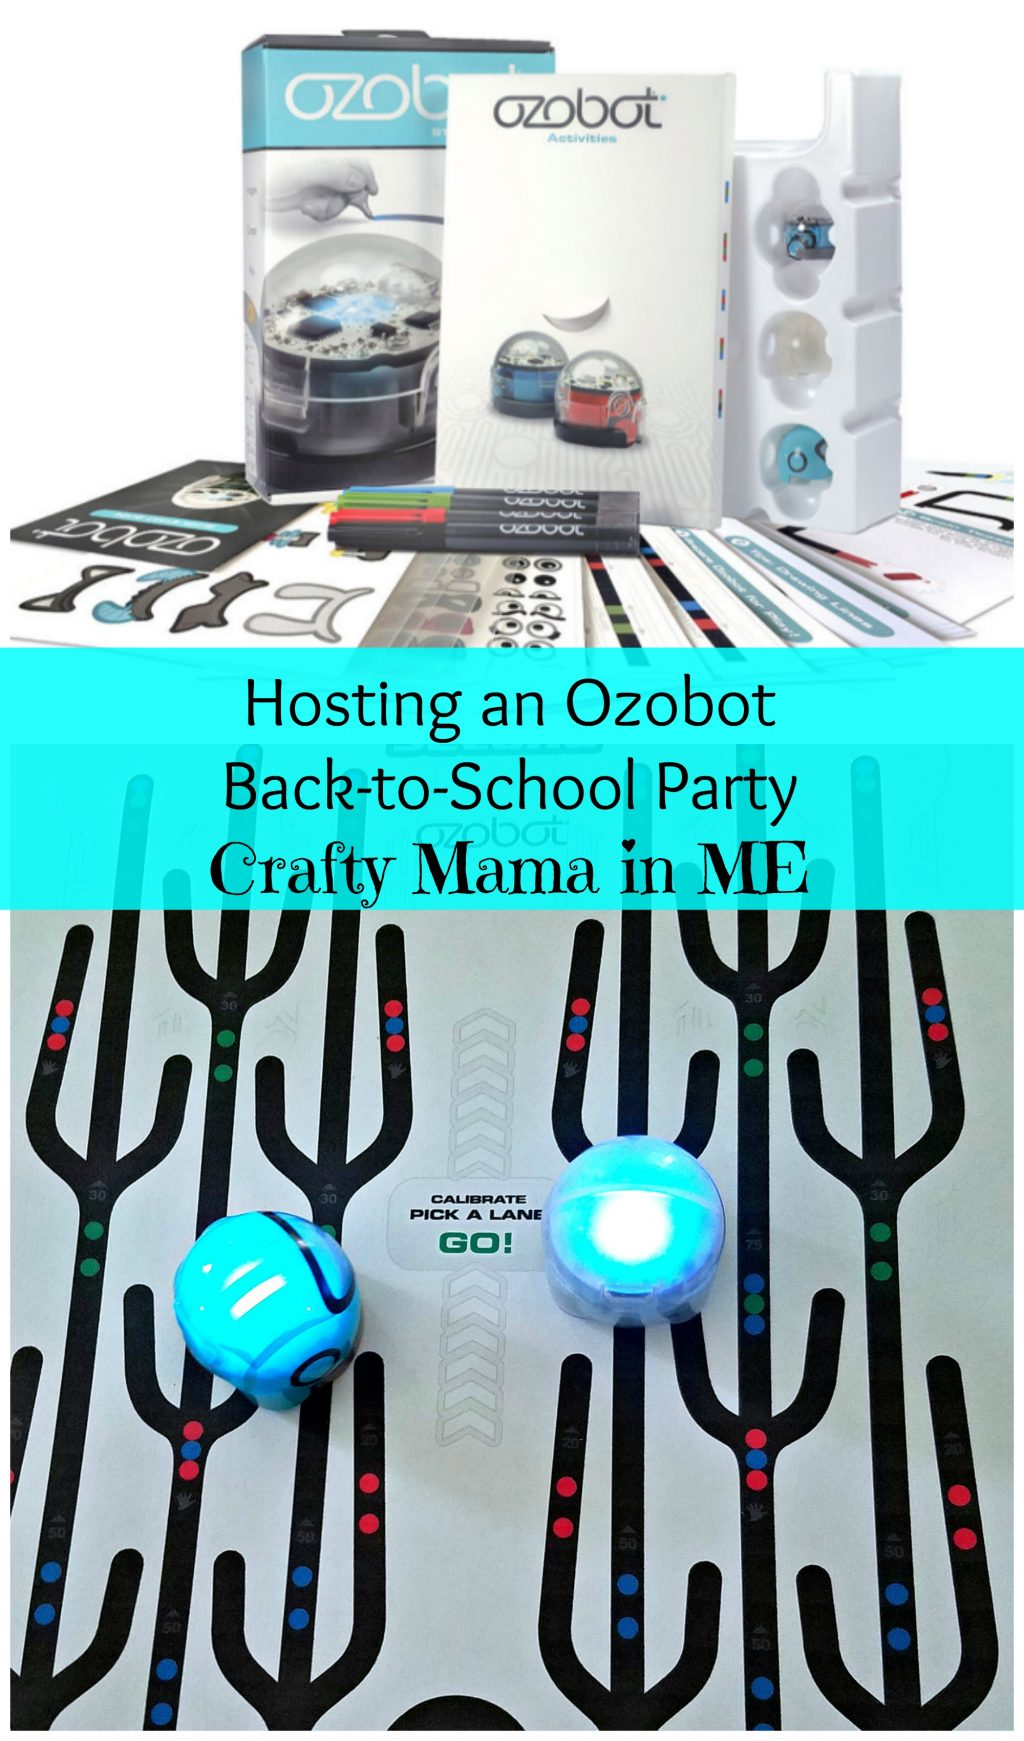 Hosting an Ozobot Back-to-School Party